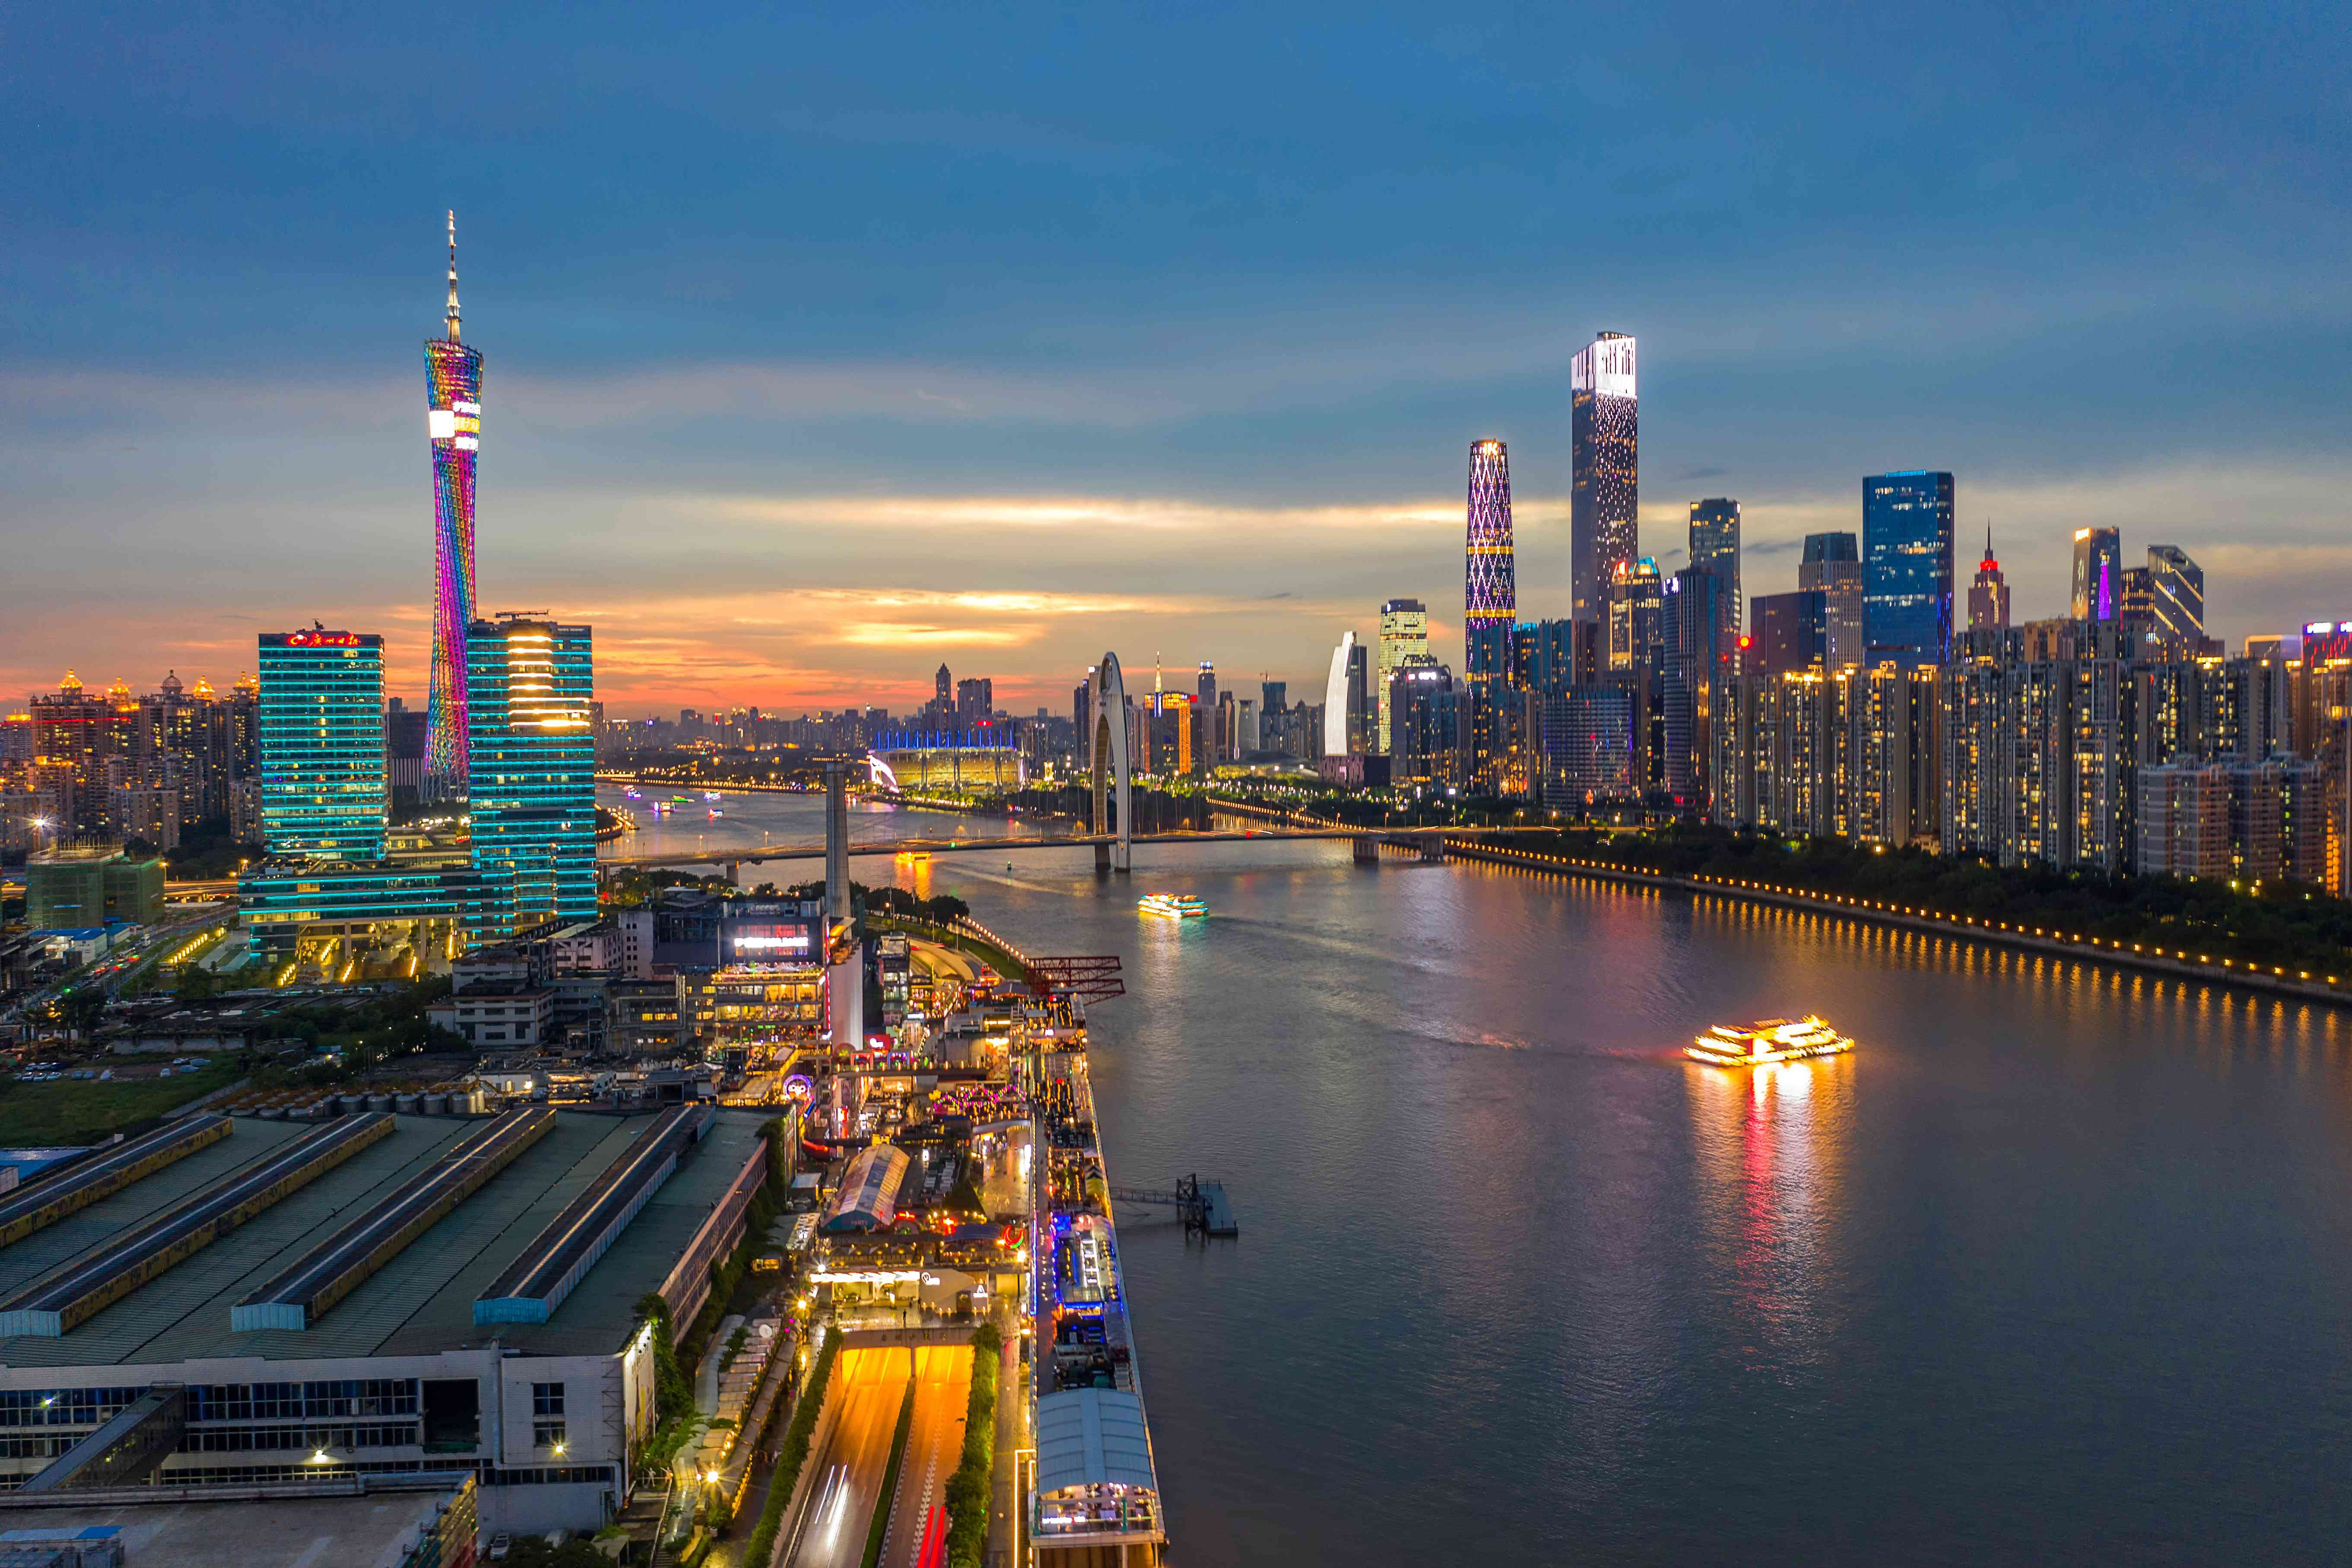 Both sides of the Pearl River in Guangzhou lit up at sunset